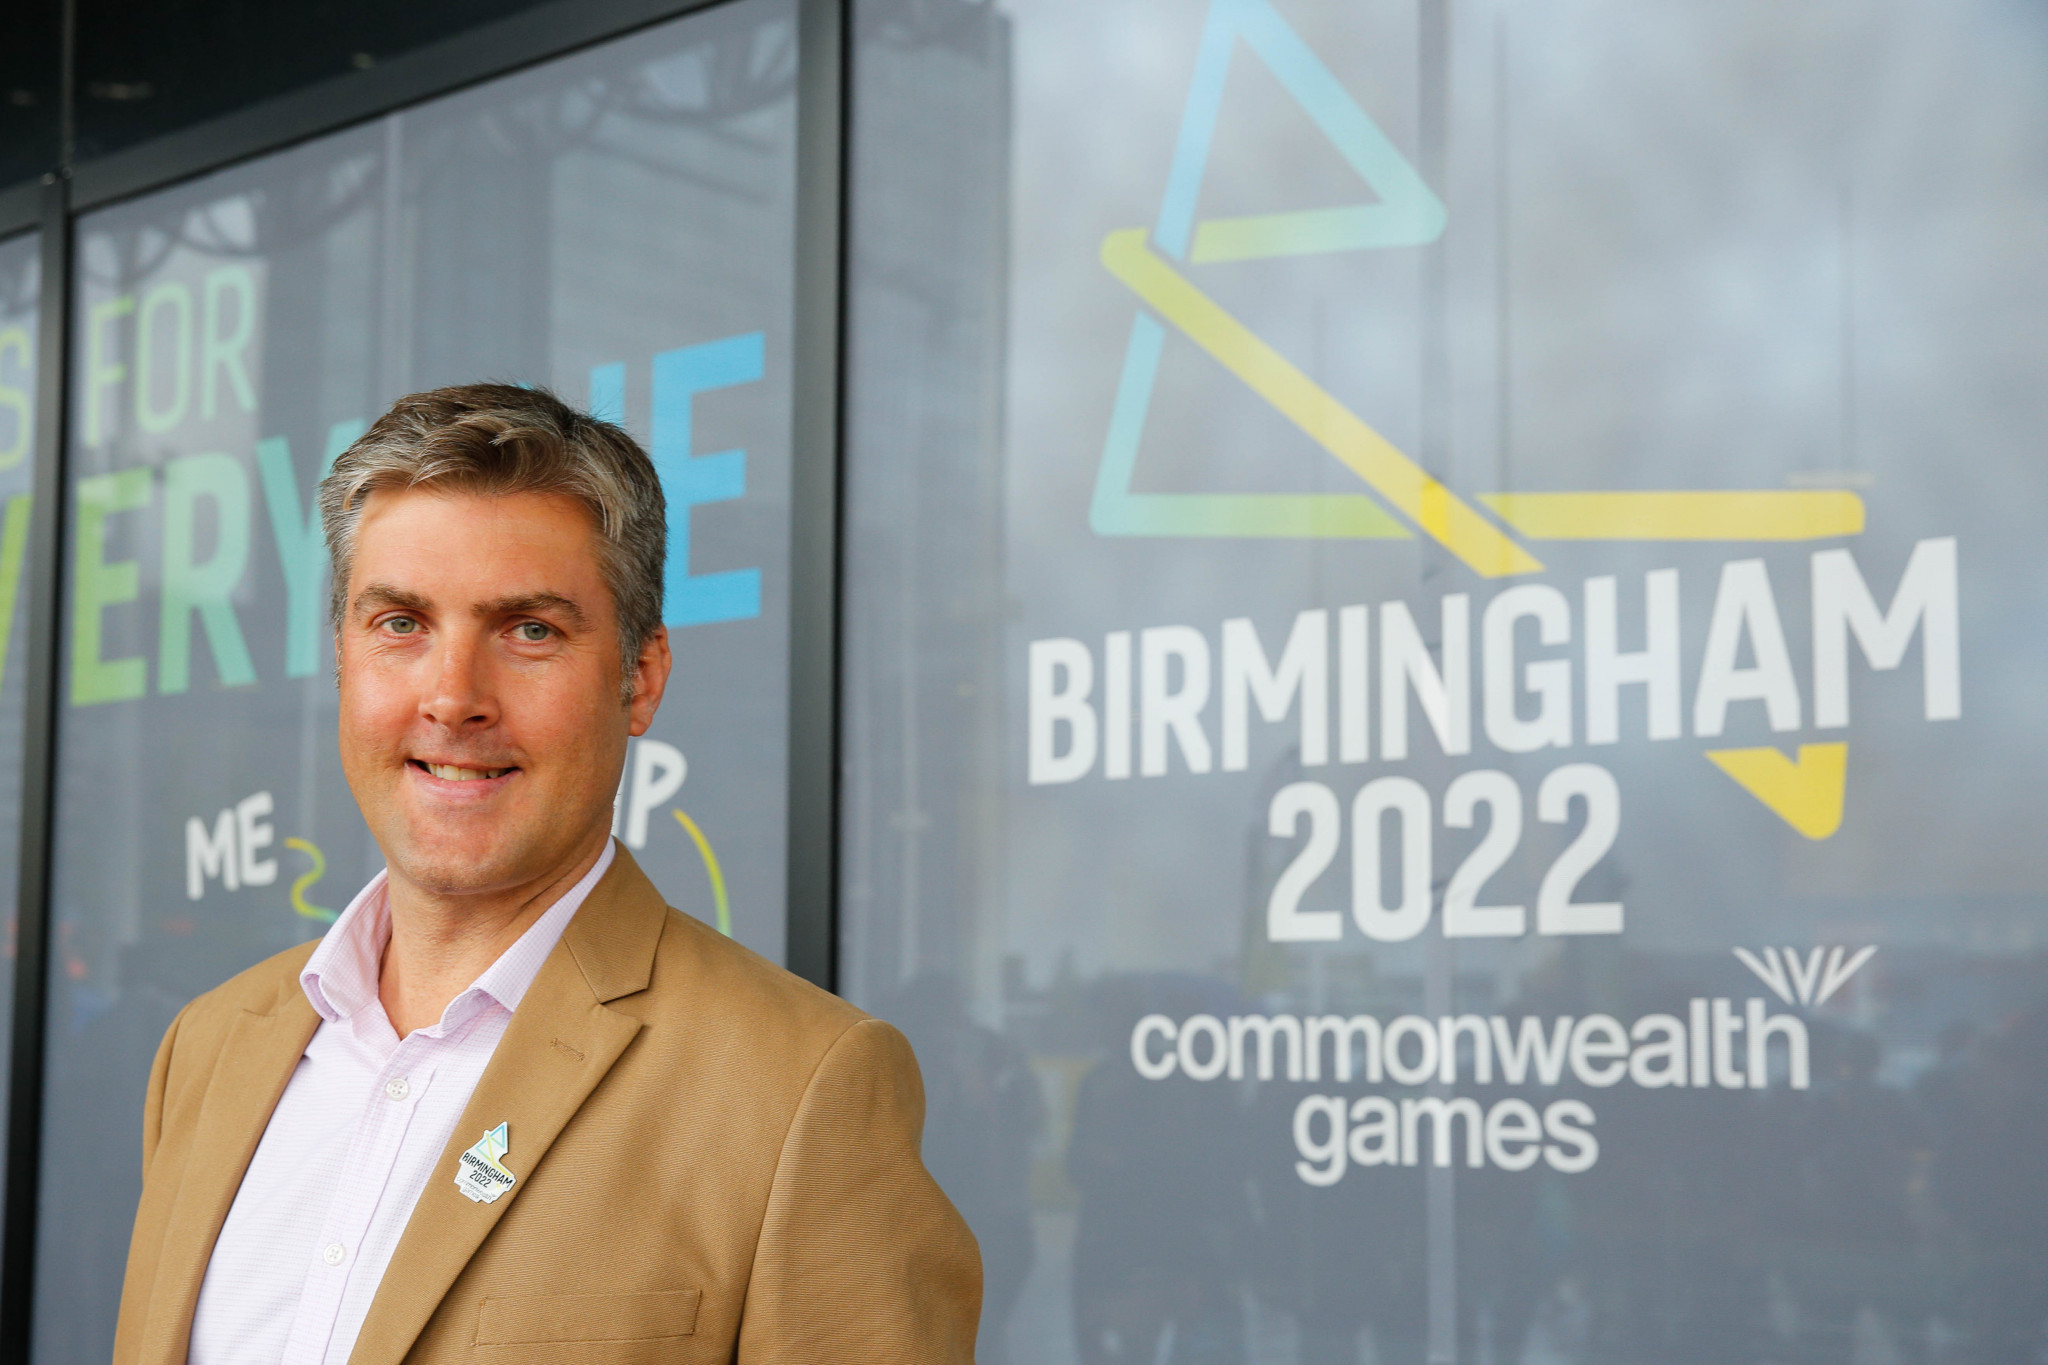 """Birmingham 2022 chief executive Reid encouraged by recruitment as preparations go """"surprisingly well"""" in face of COVID-19"""